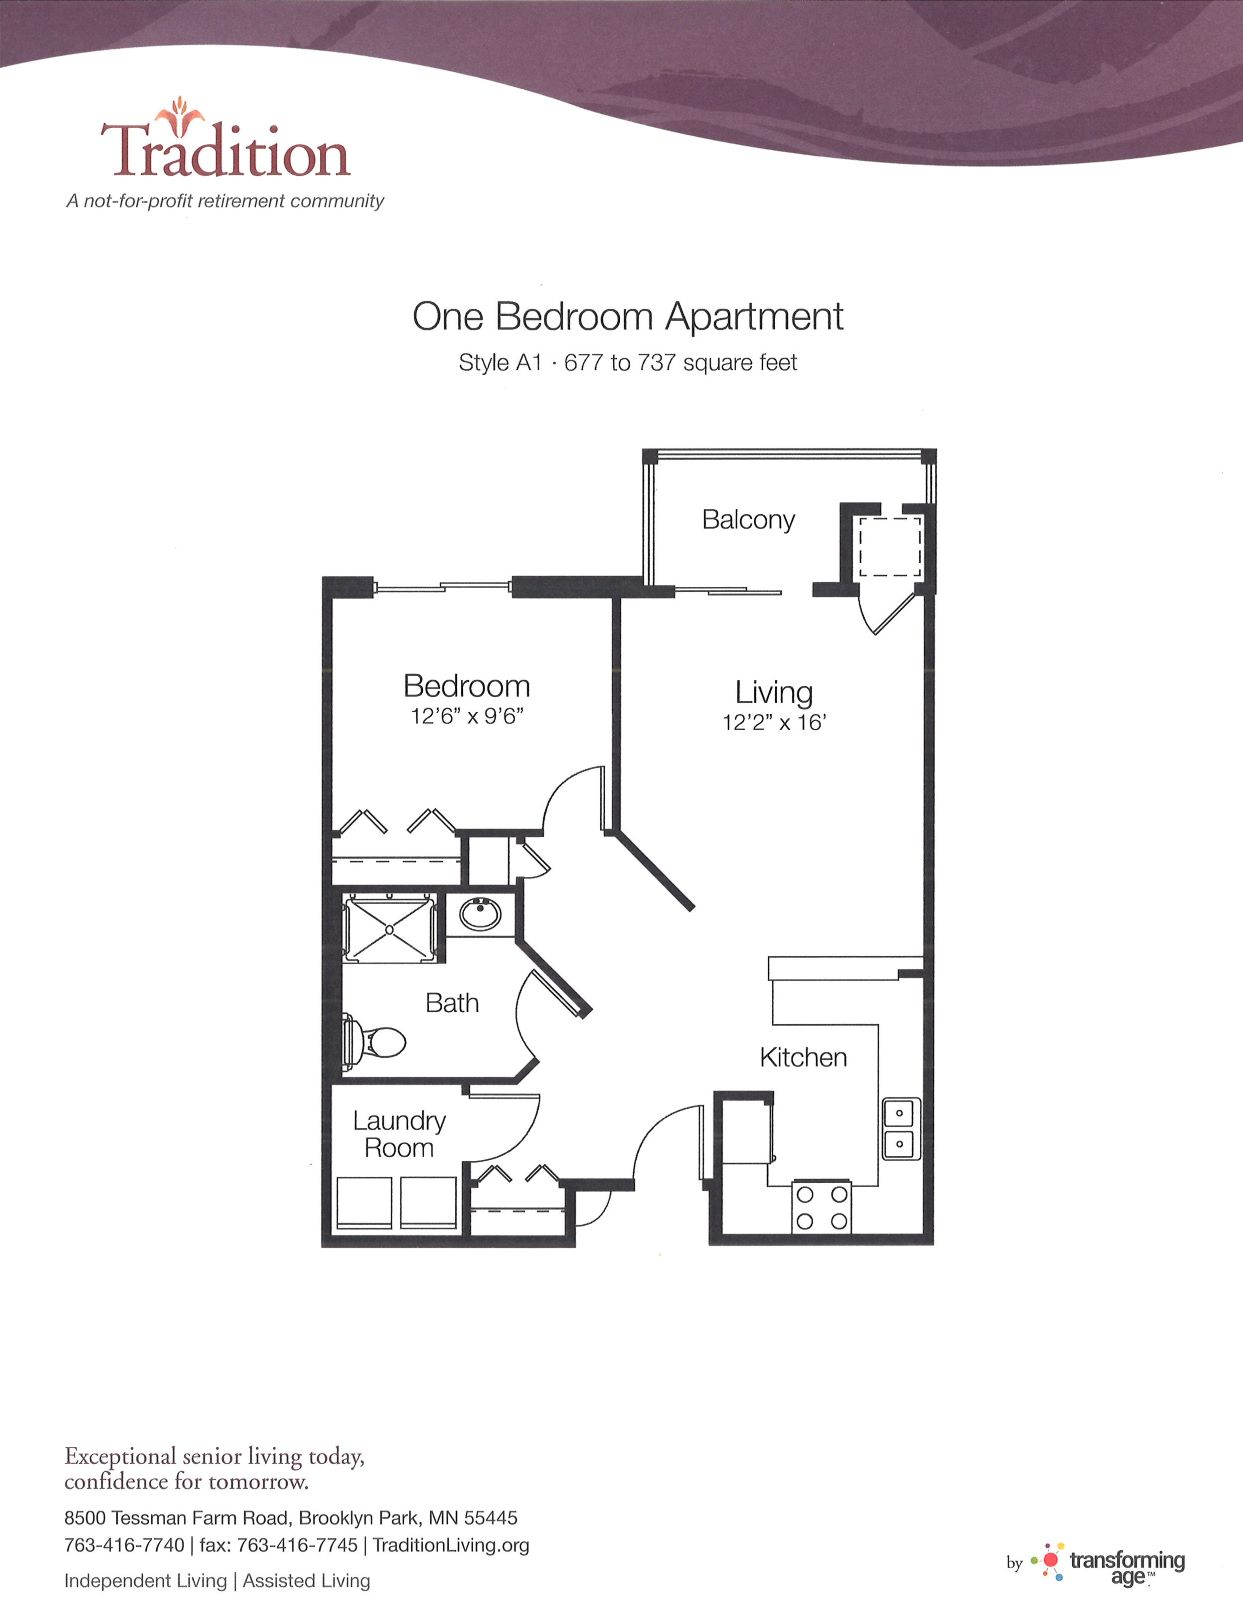 One Bedroom Apartment (A1)